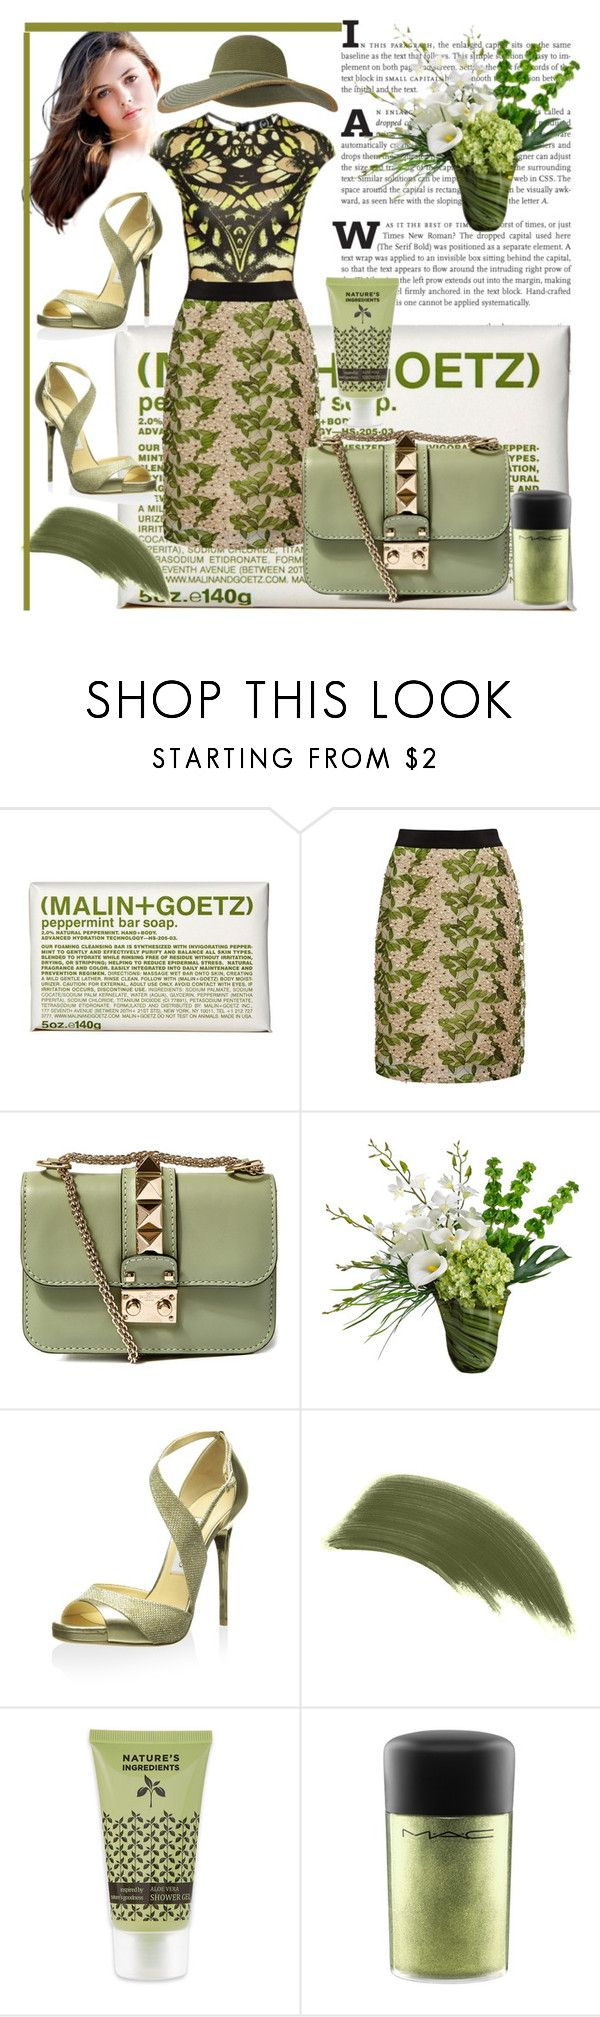 """Green"" by vaslida ❤ liked on Polyvore featuring (MALIN+GOETZ), Almost Famous, Valentino, Allstate Floral, Jimmy Choo, By Terry, MAC Cosmetics and Keds"